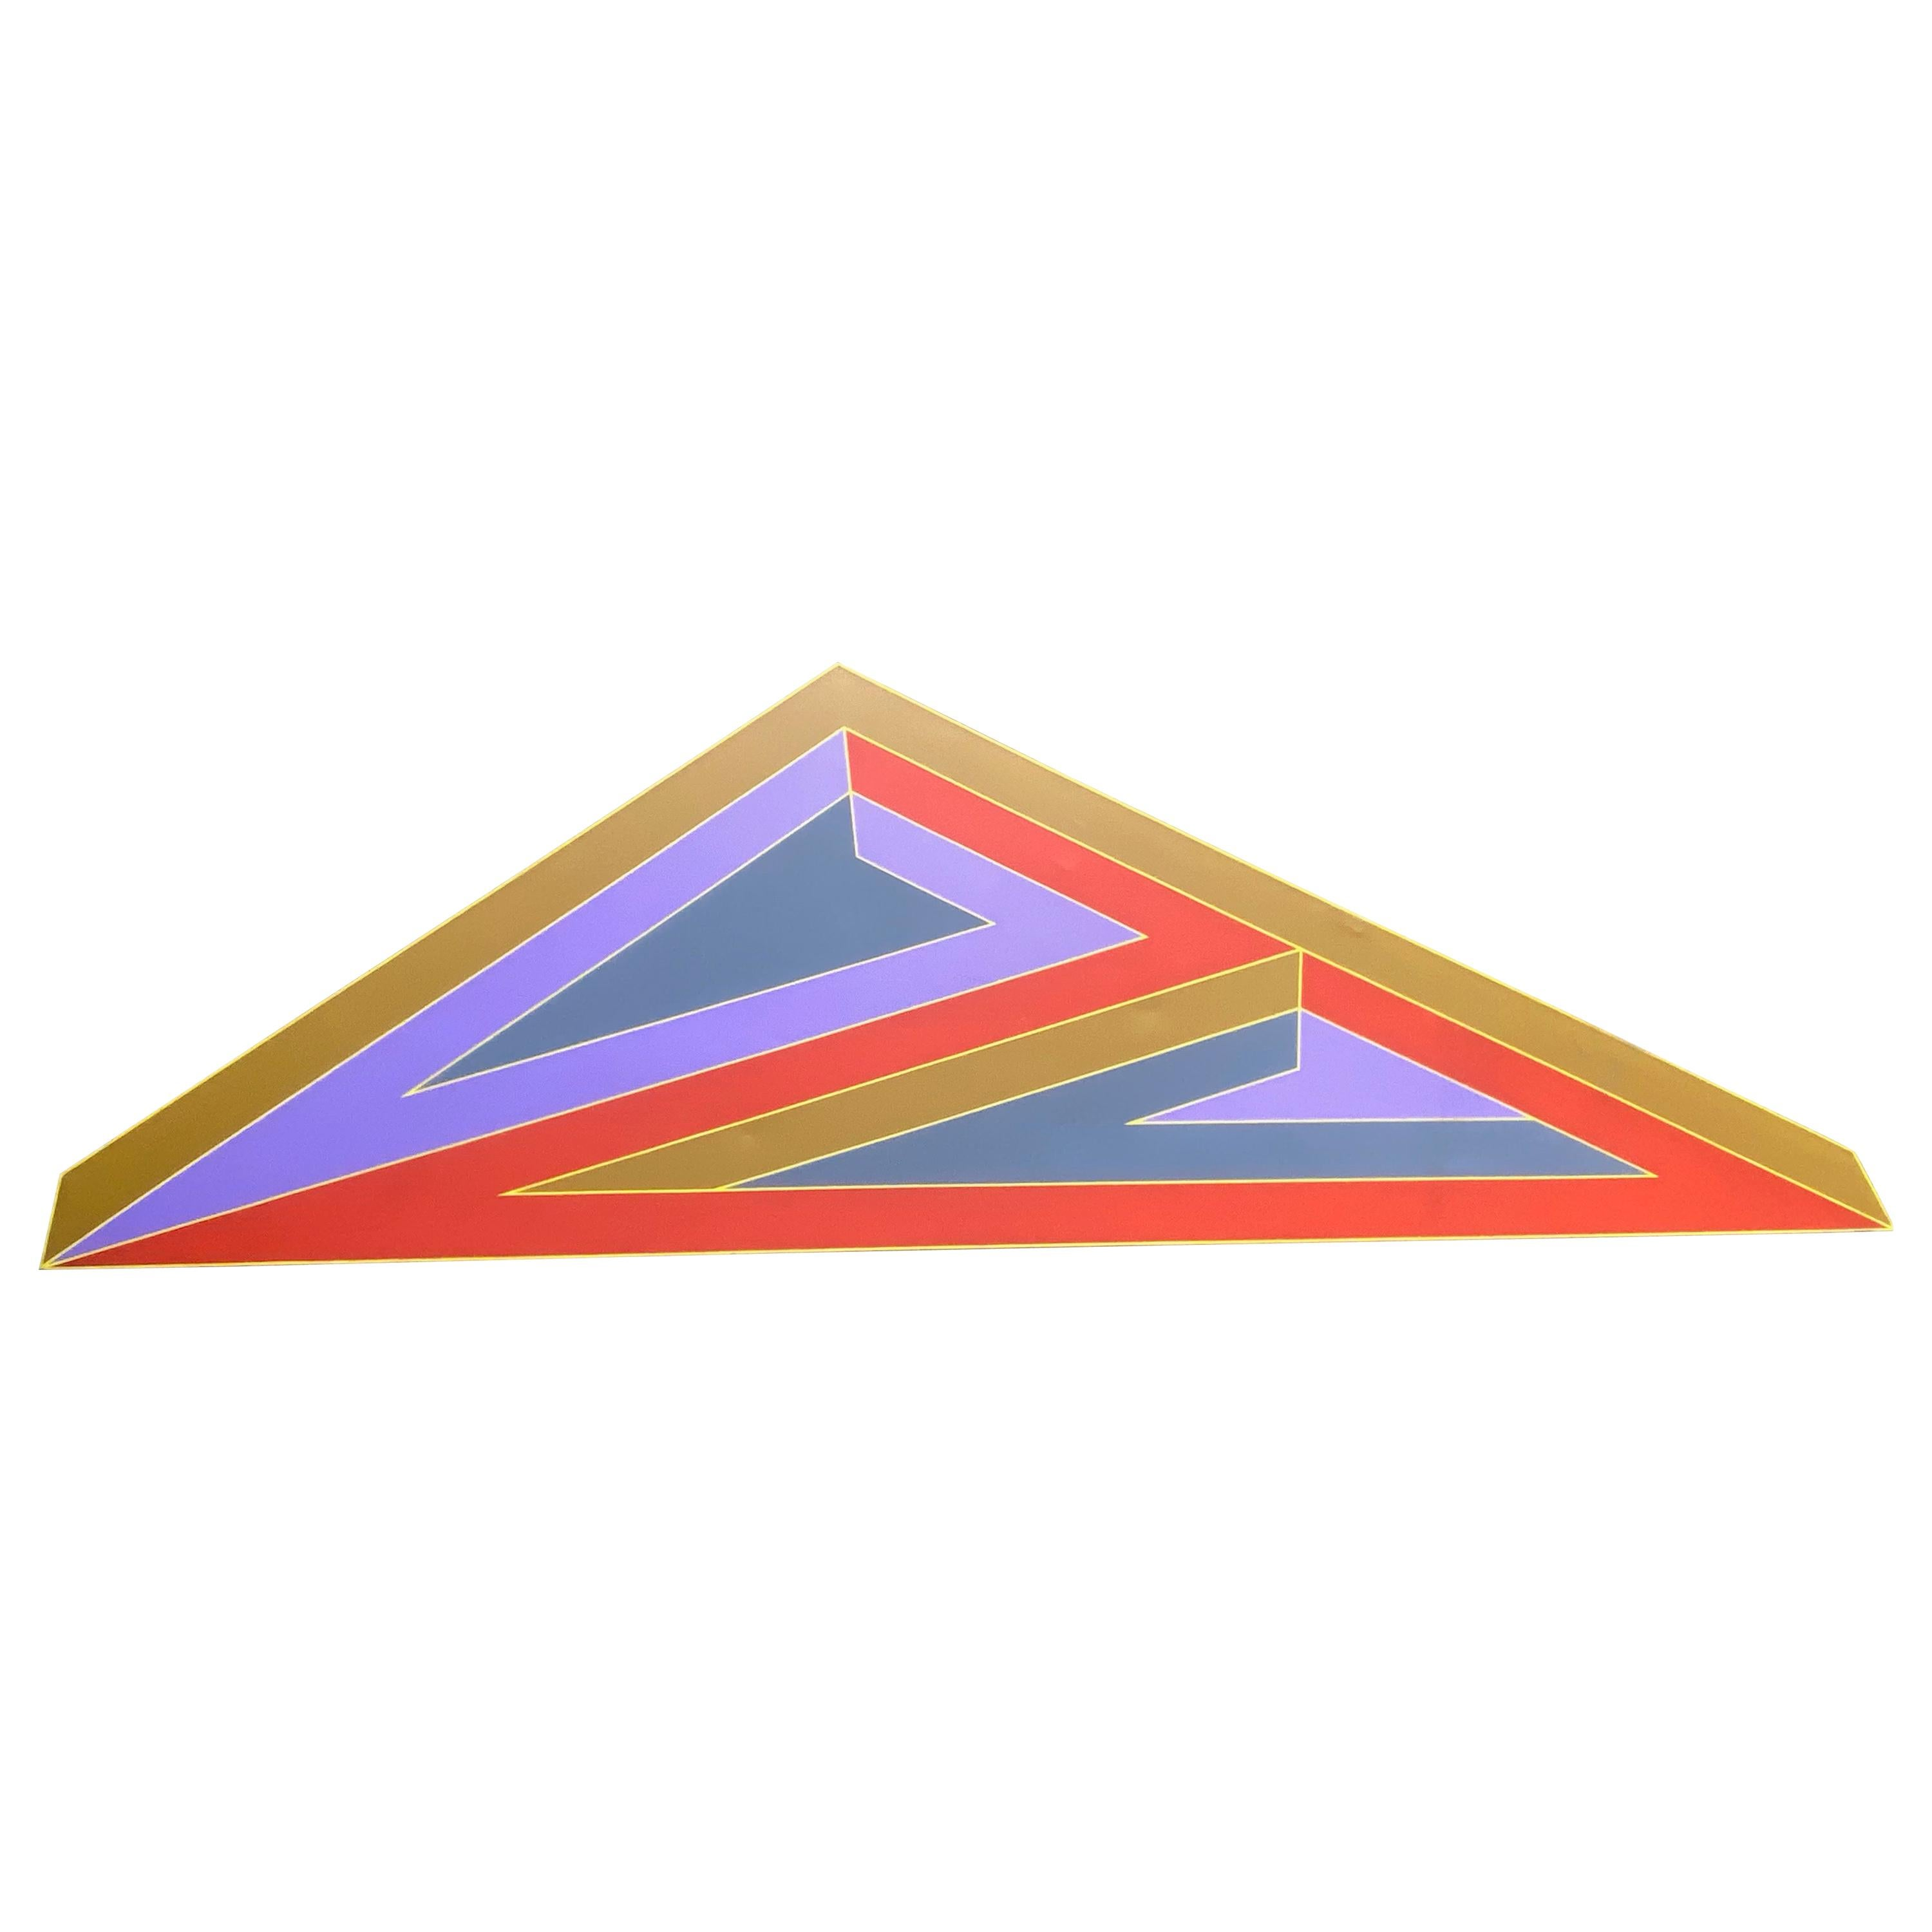 Massive 1970 Hard Edge Abstract Shaped Canvas Manner of Frank Stella